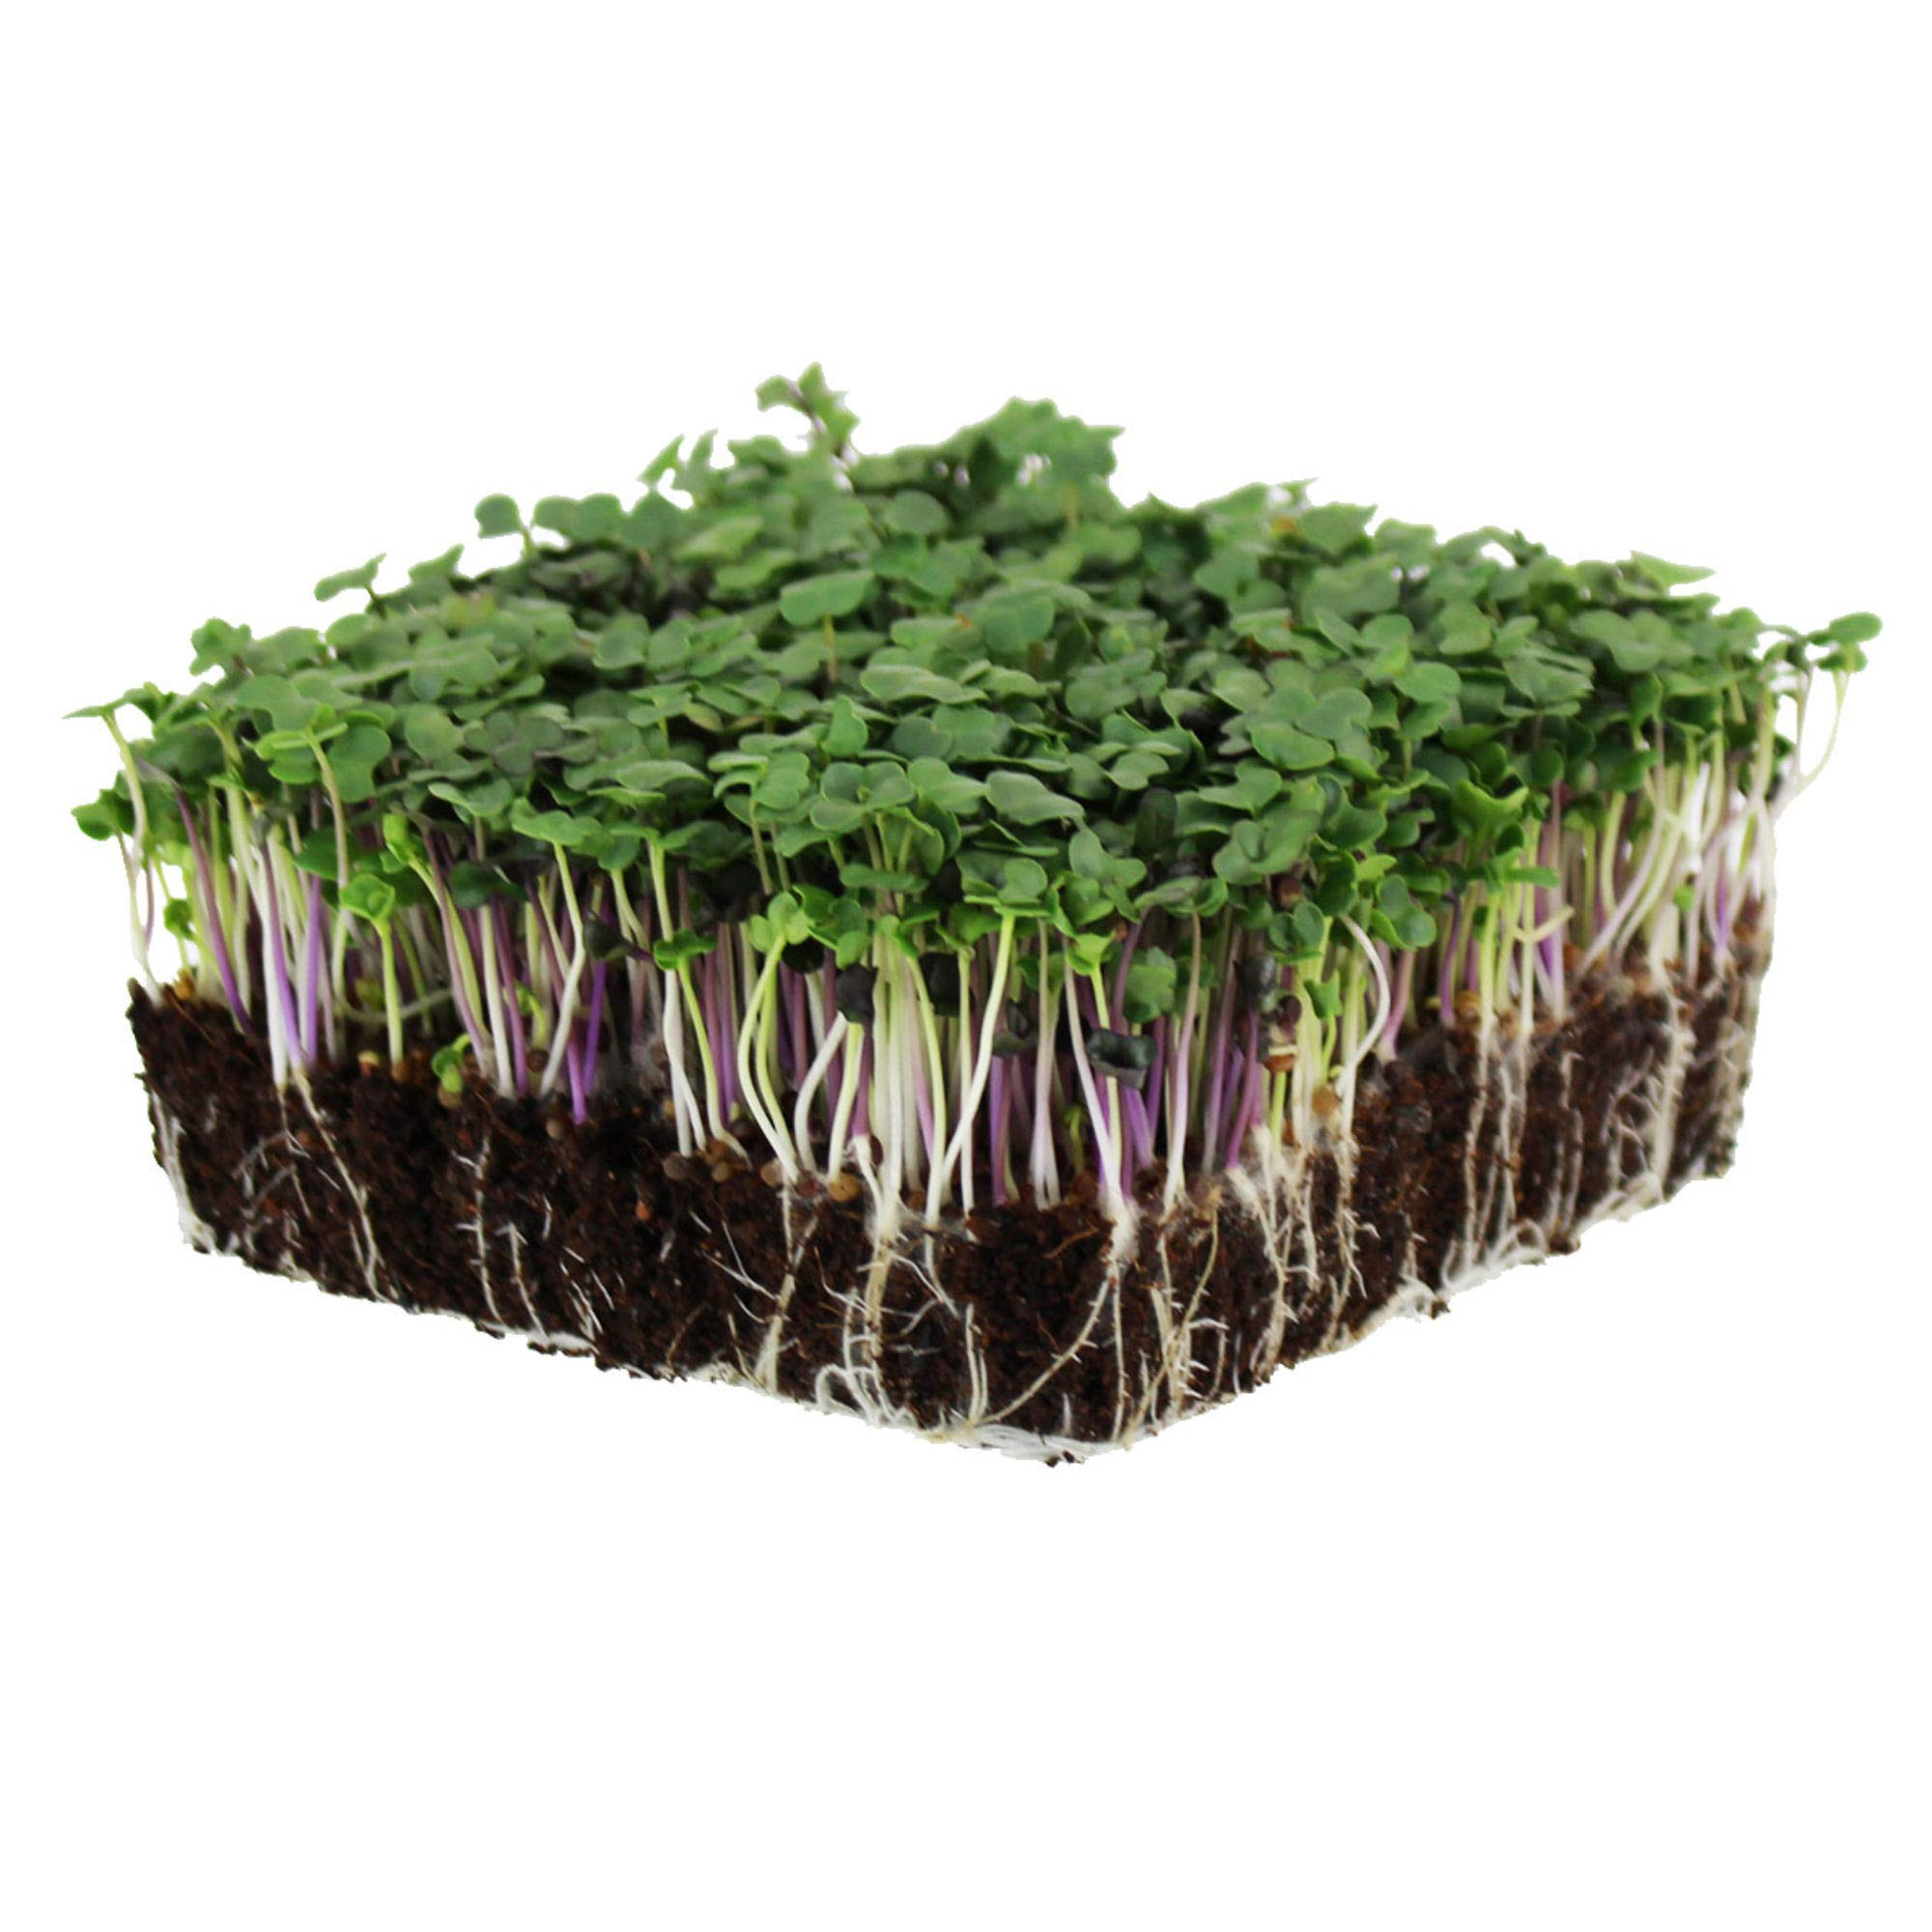 Spicy Micro Salad Mix Microgreens Seeds: 1 Lb - Non-GMO Seed Blend: Broccoli, Kale, Mustard, Cabbage, Arugula, More by Mountain Valley Seed Company